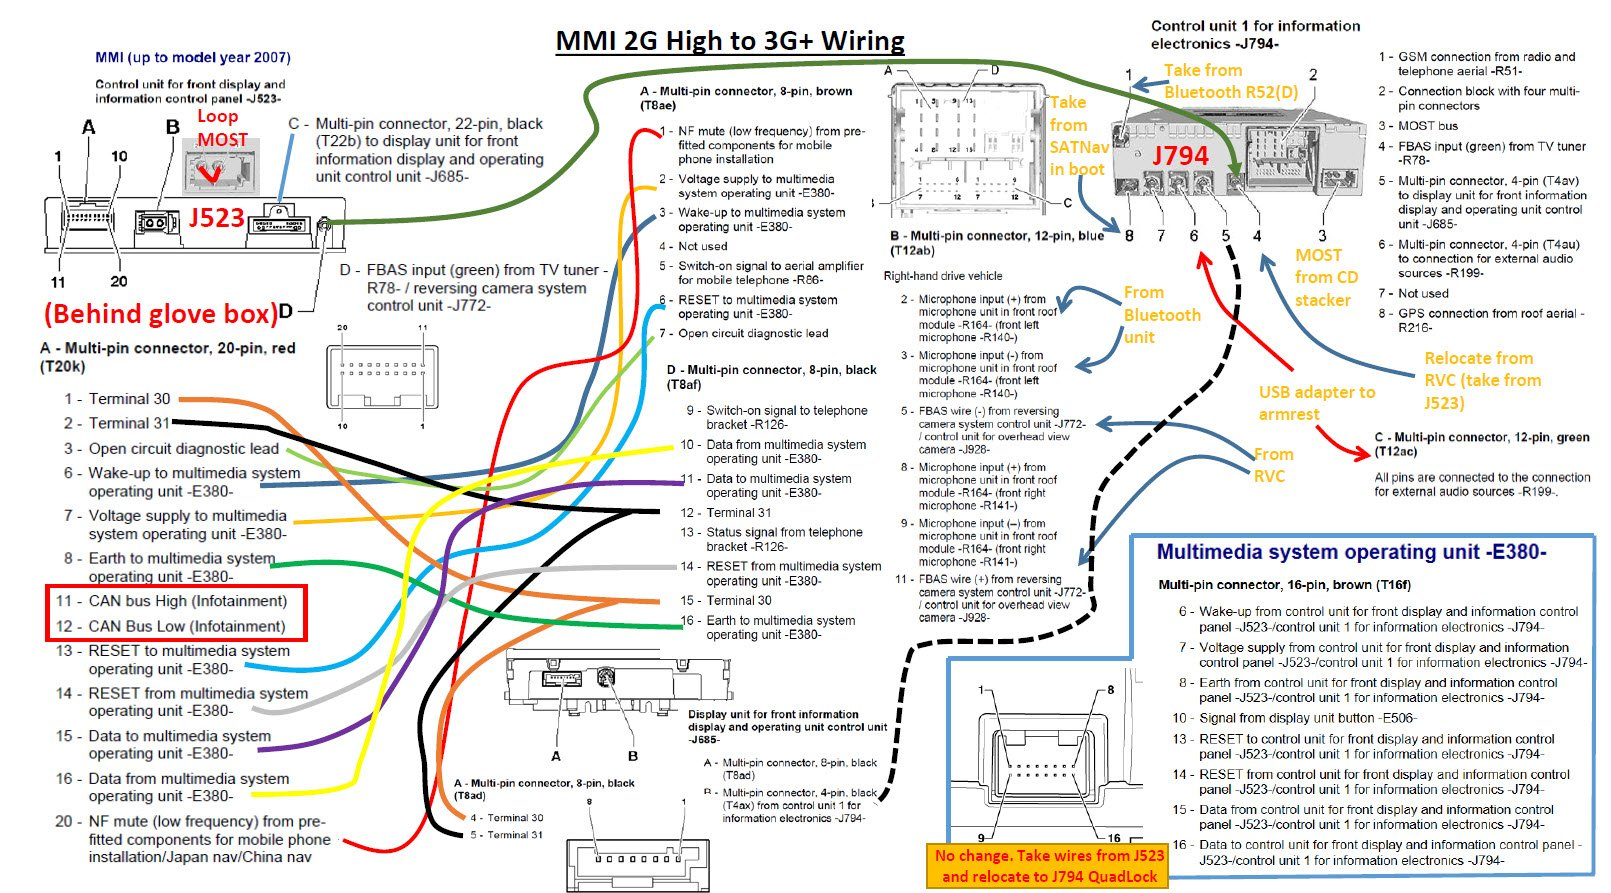 MMI3G+ retrofit - 2007 Q7 - Hidden menu help... | Audi Forum | Audi Mmi Wiring Diagram |  | Audi Forum